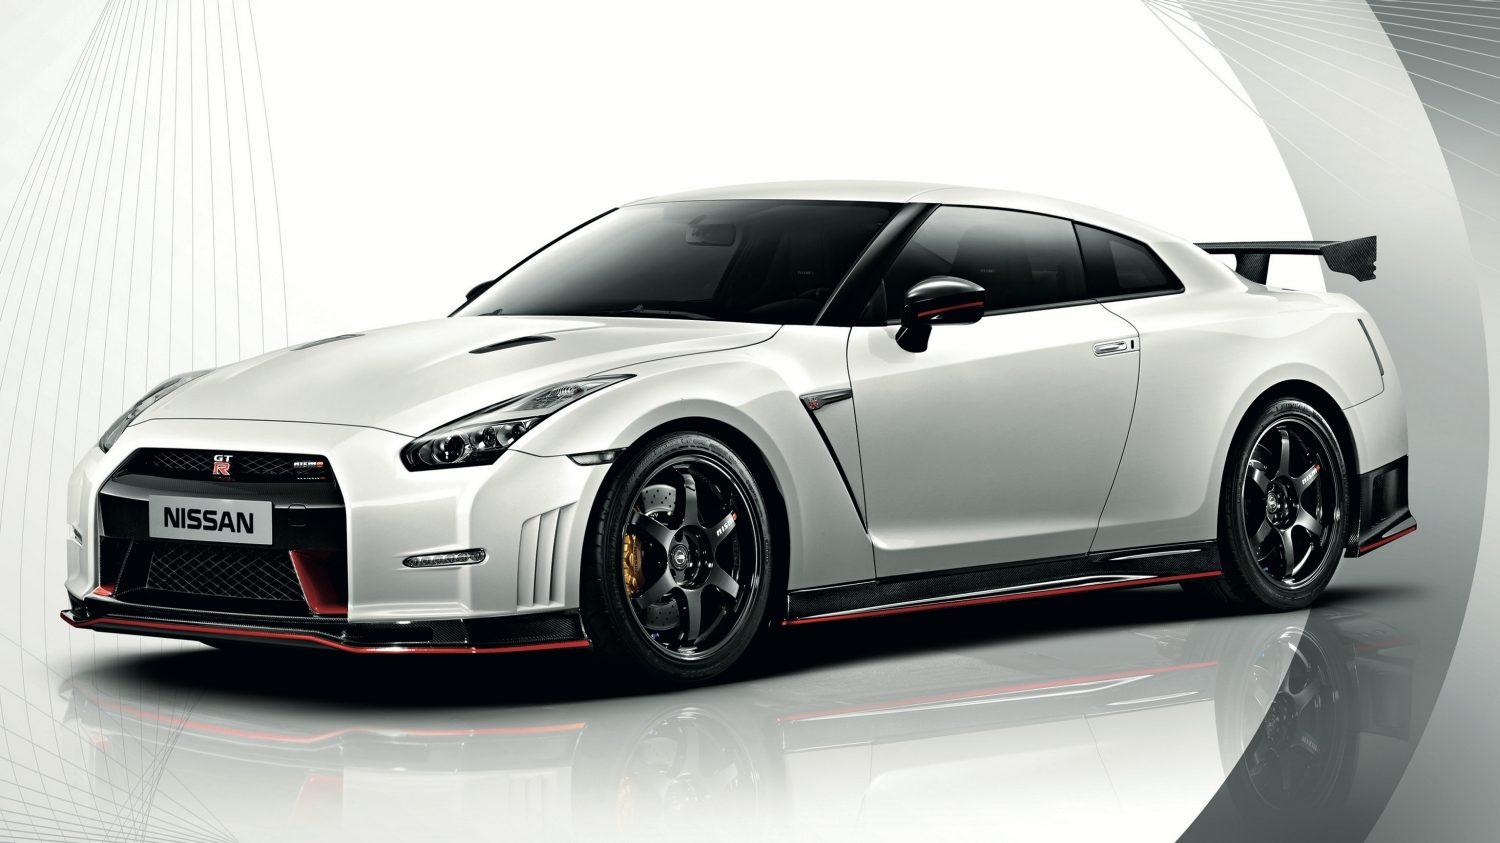 nissan gt r nismo supercar voiture de sport nissan. Black Bedroom Furniture Sets. Home Design Ideas